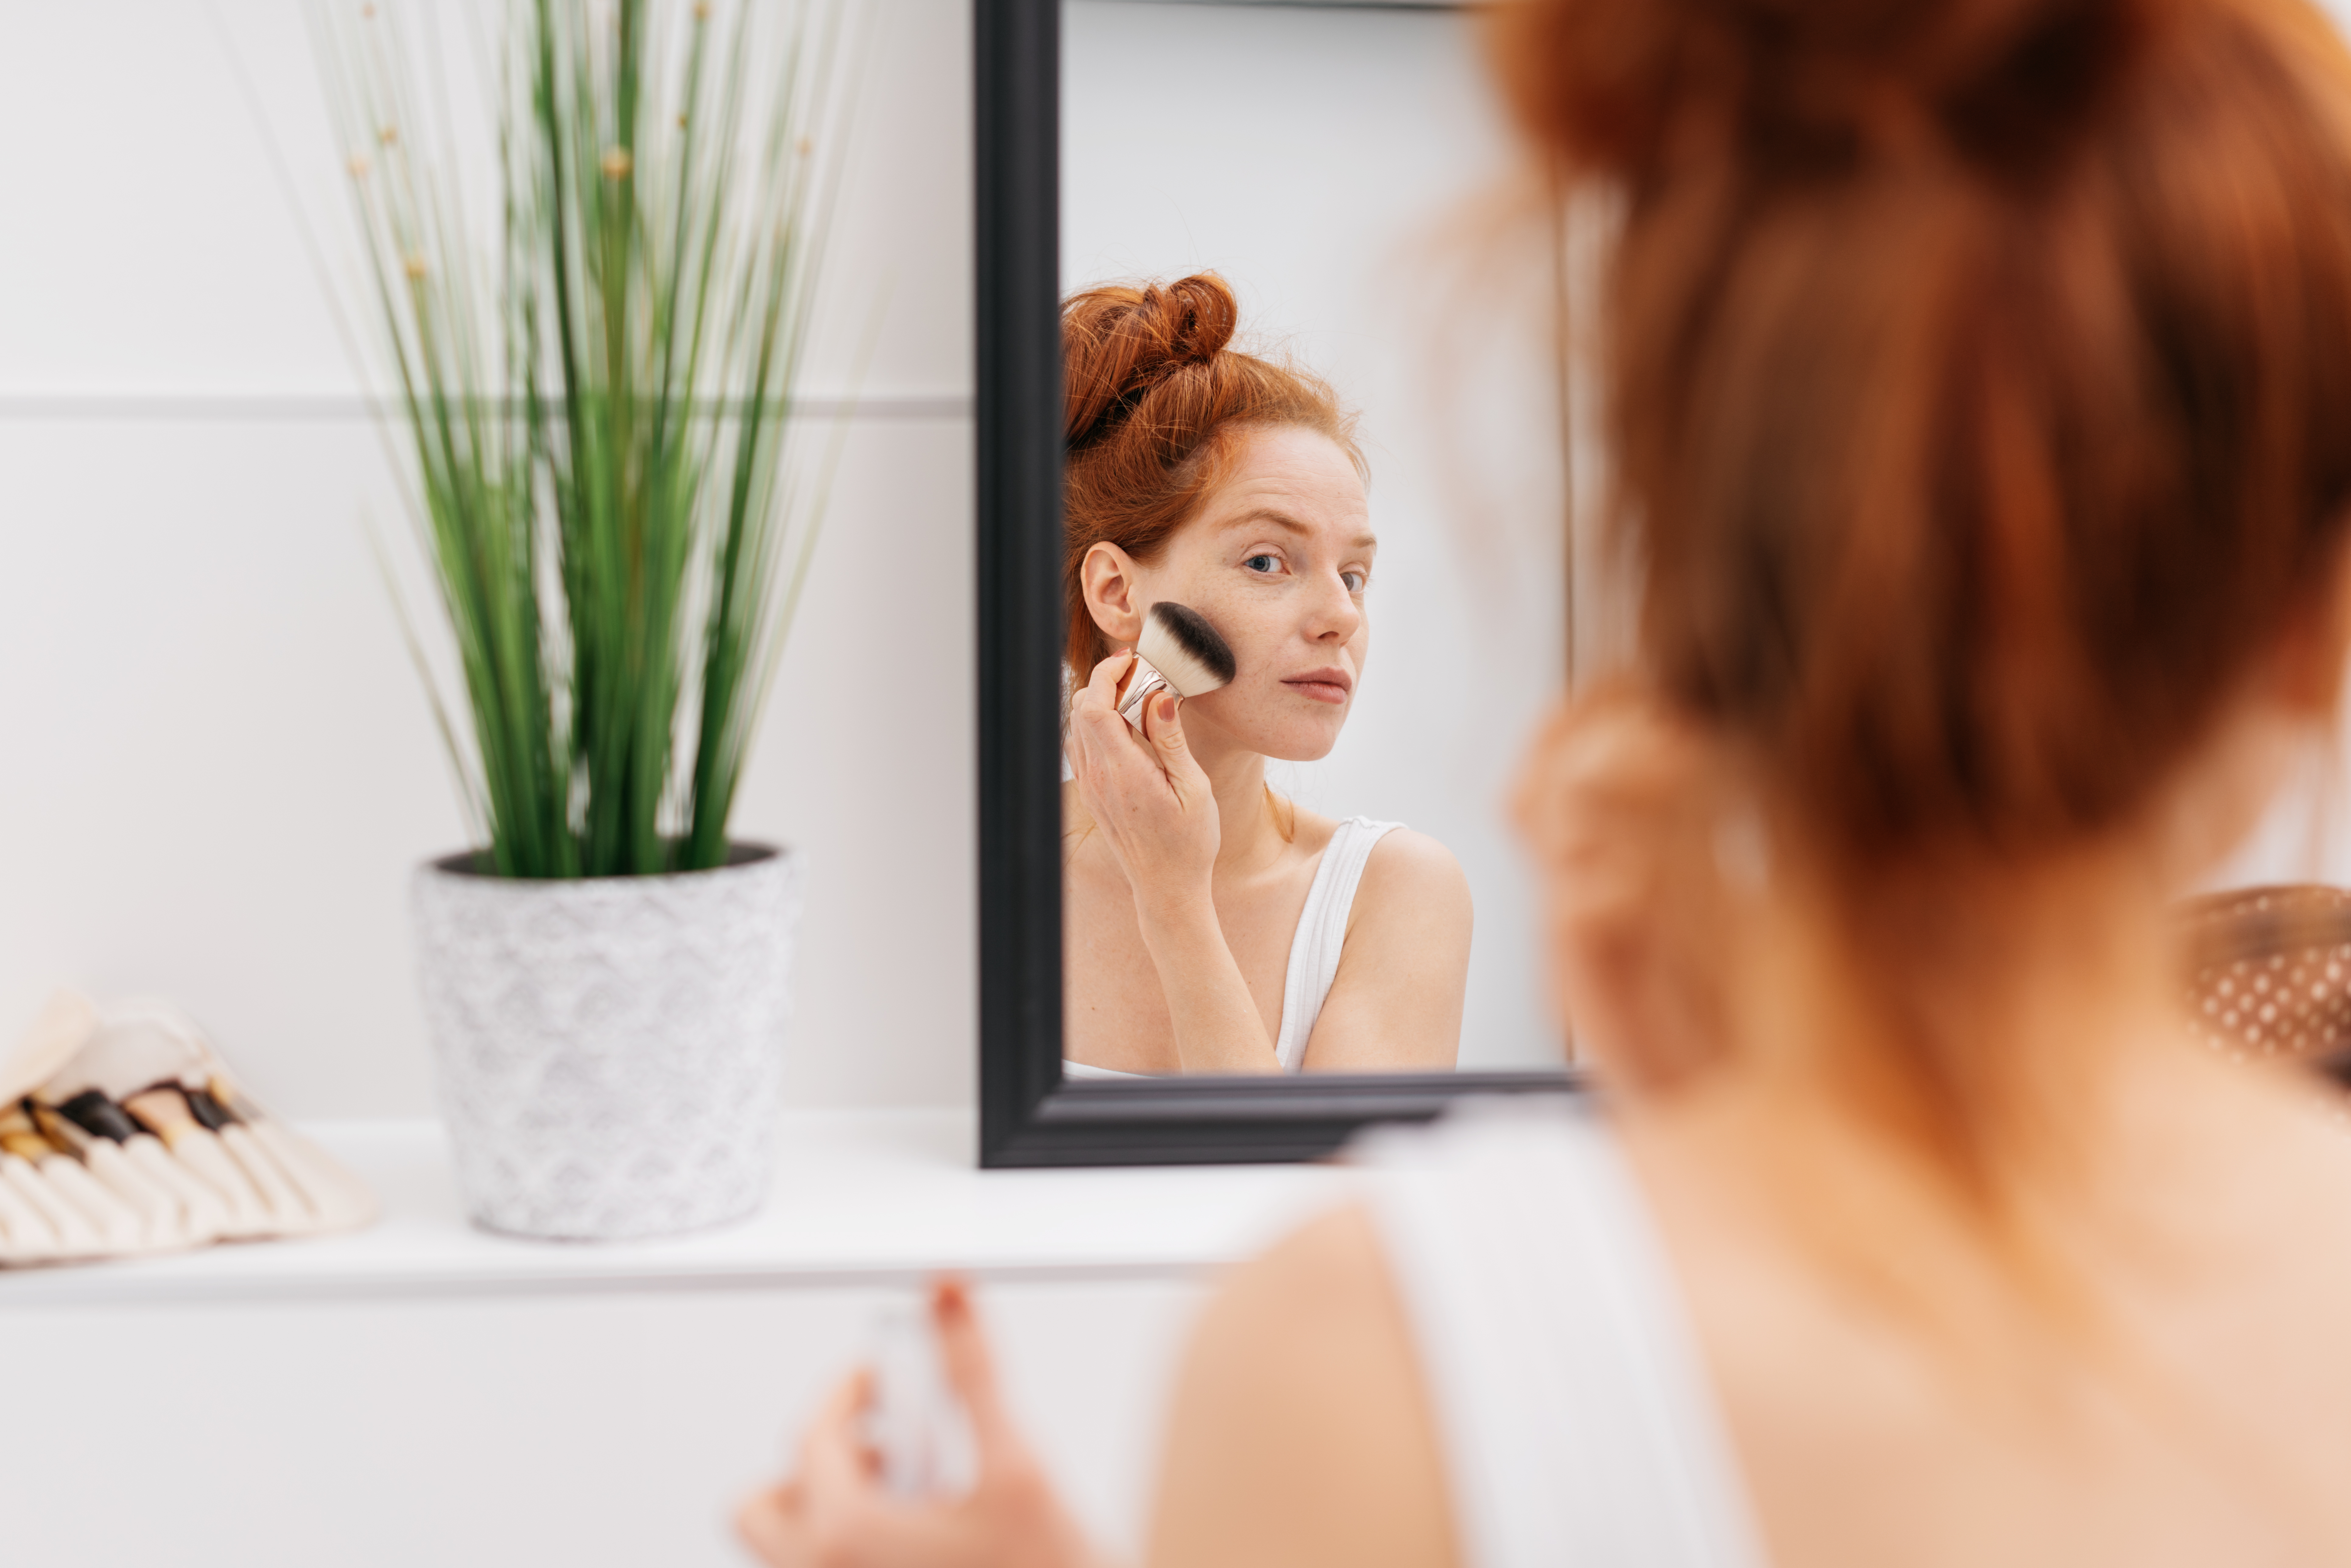 Woman applying makeup in the mirror